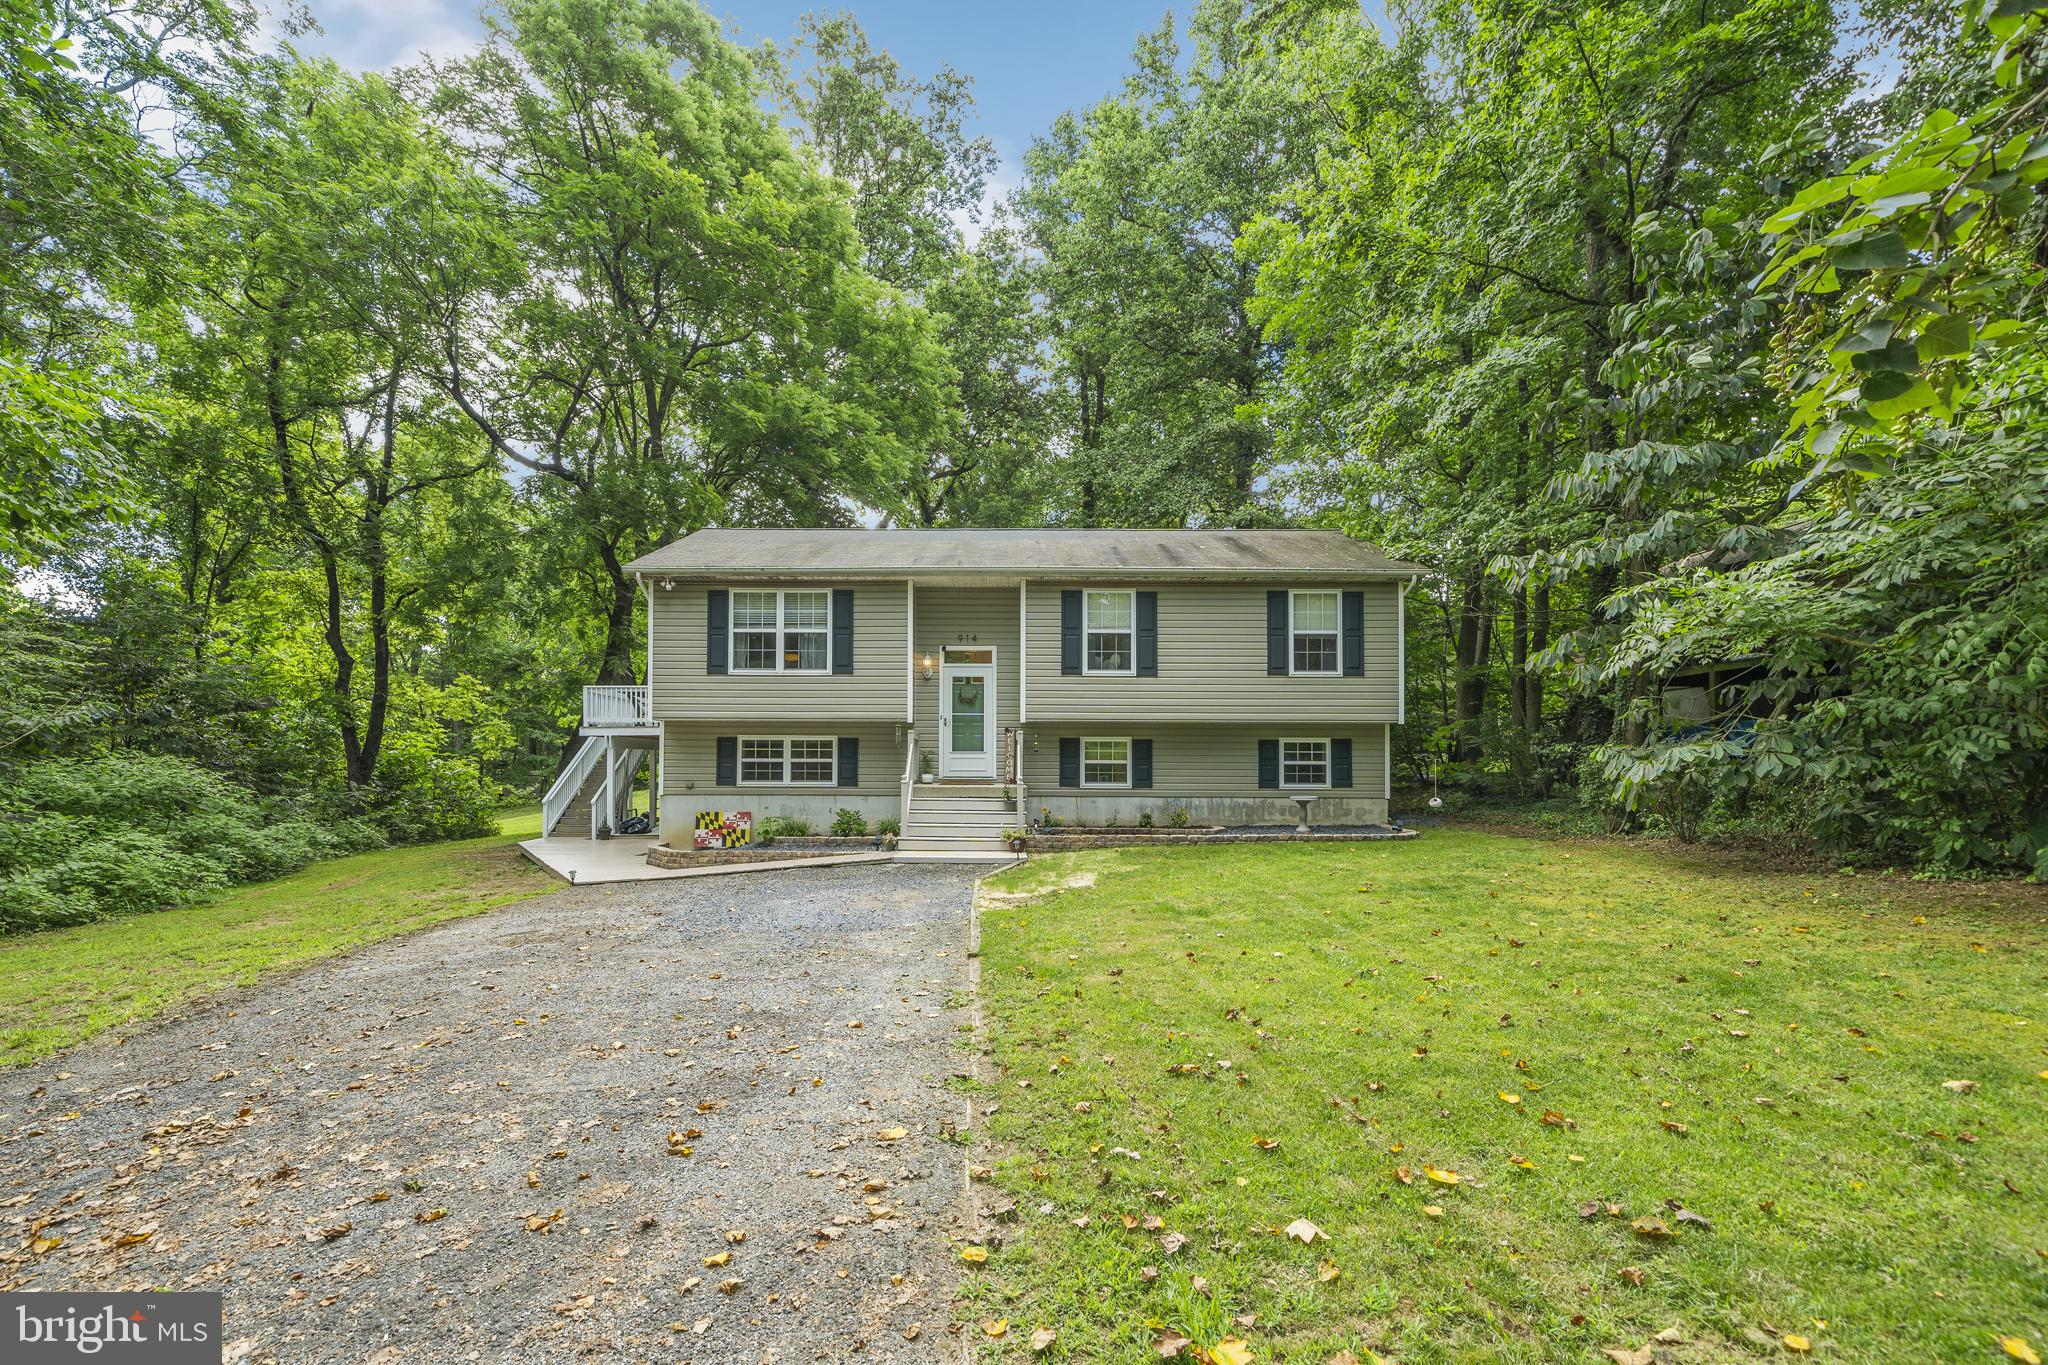 914 Hollis Ct, Lusby, MD, 20657